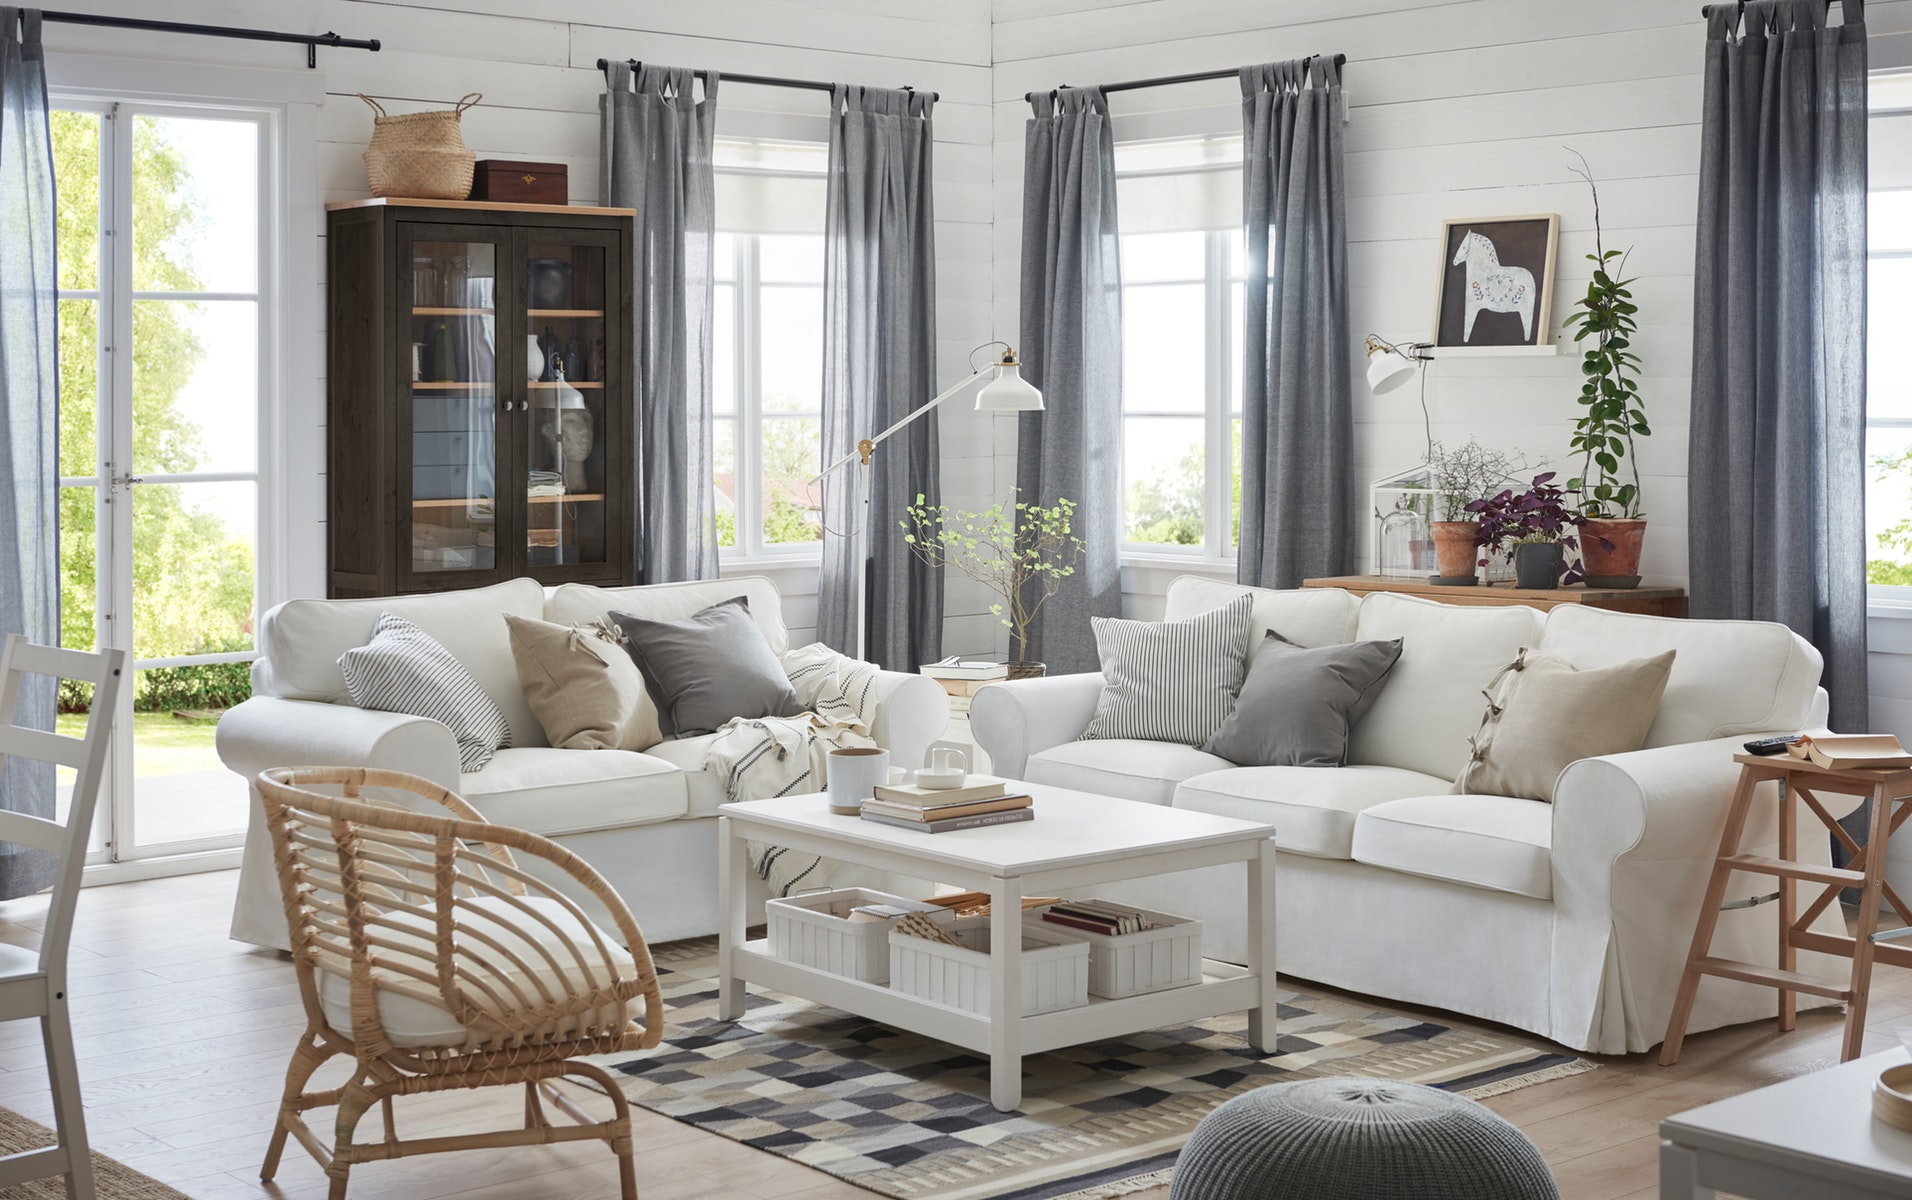 How to arrange your dream living room